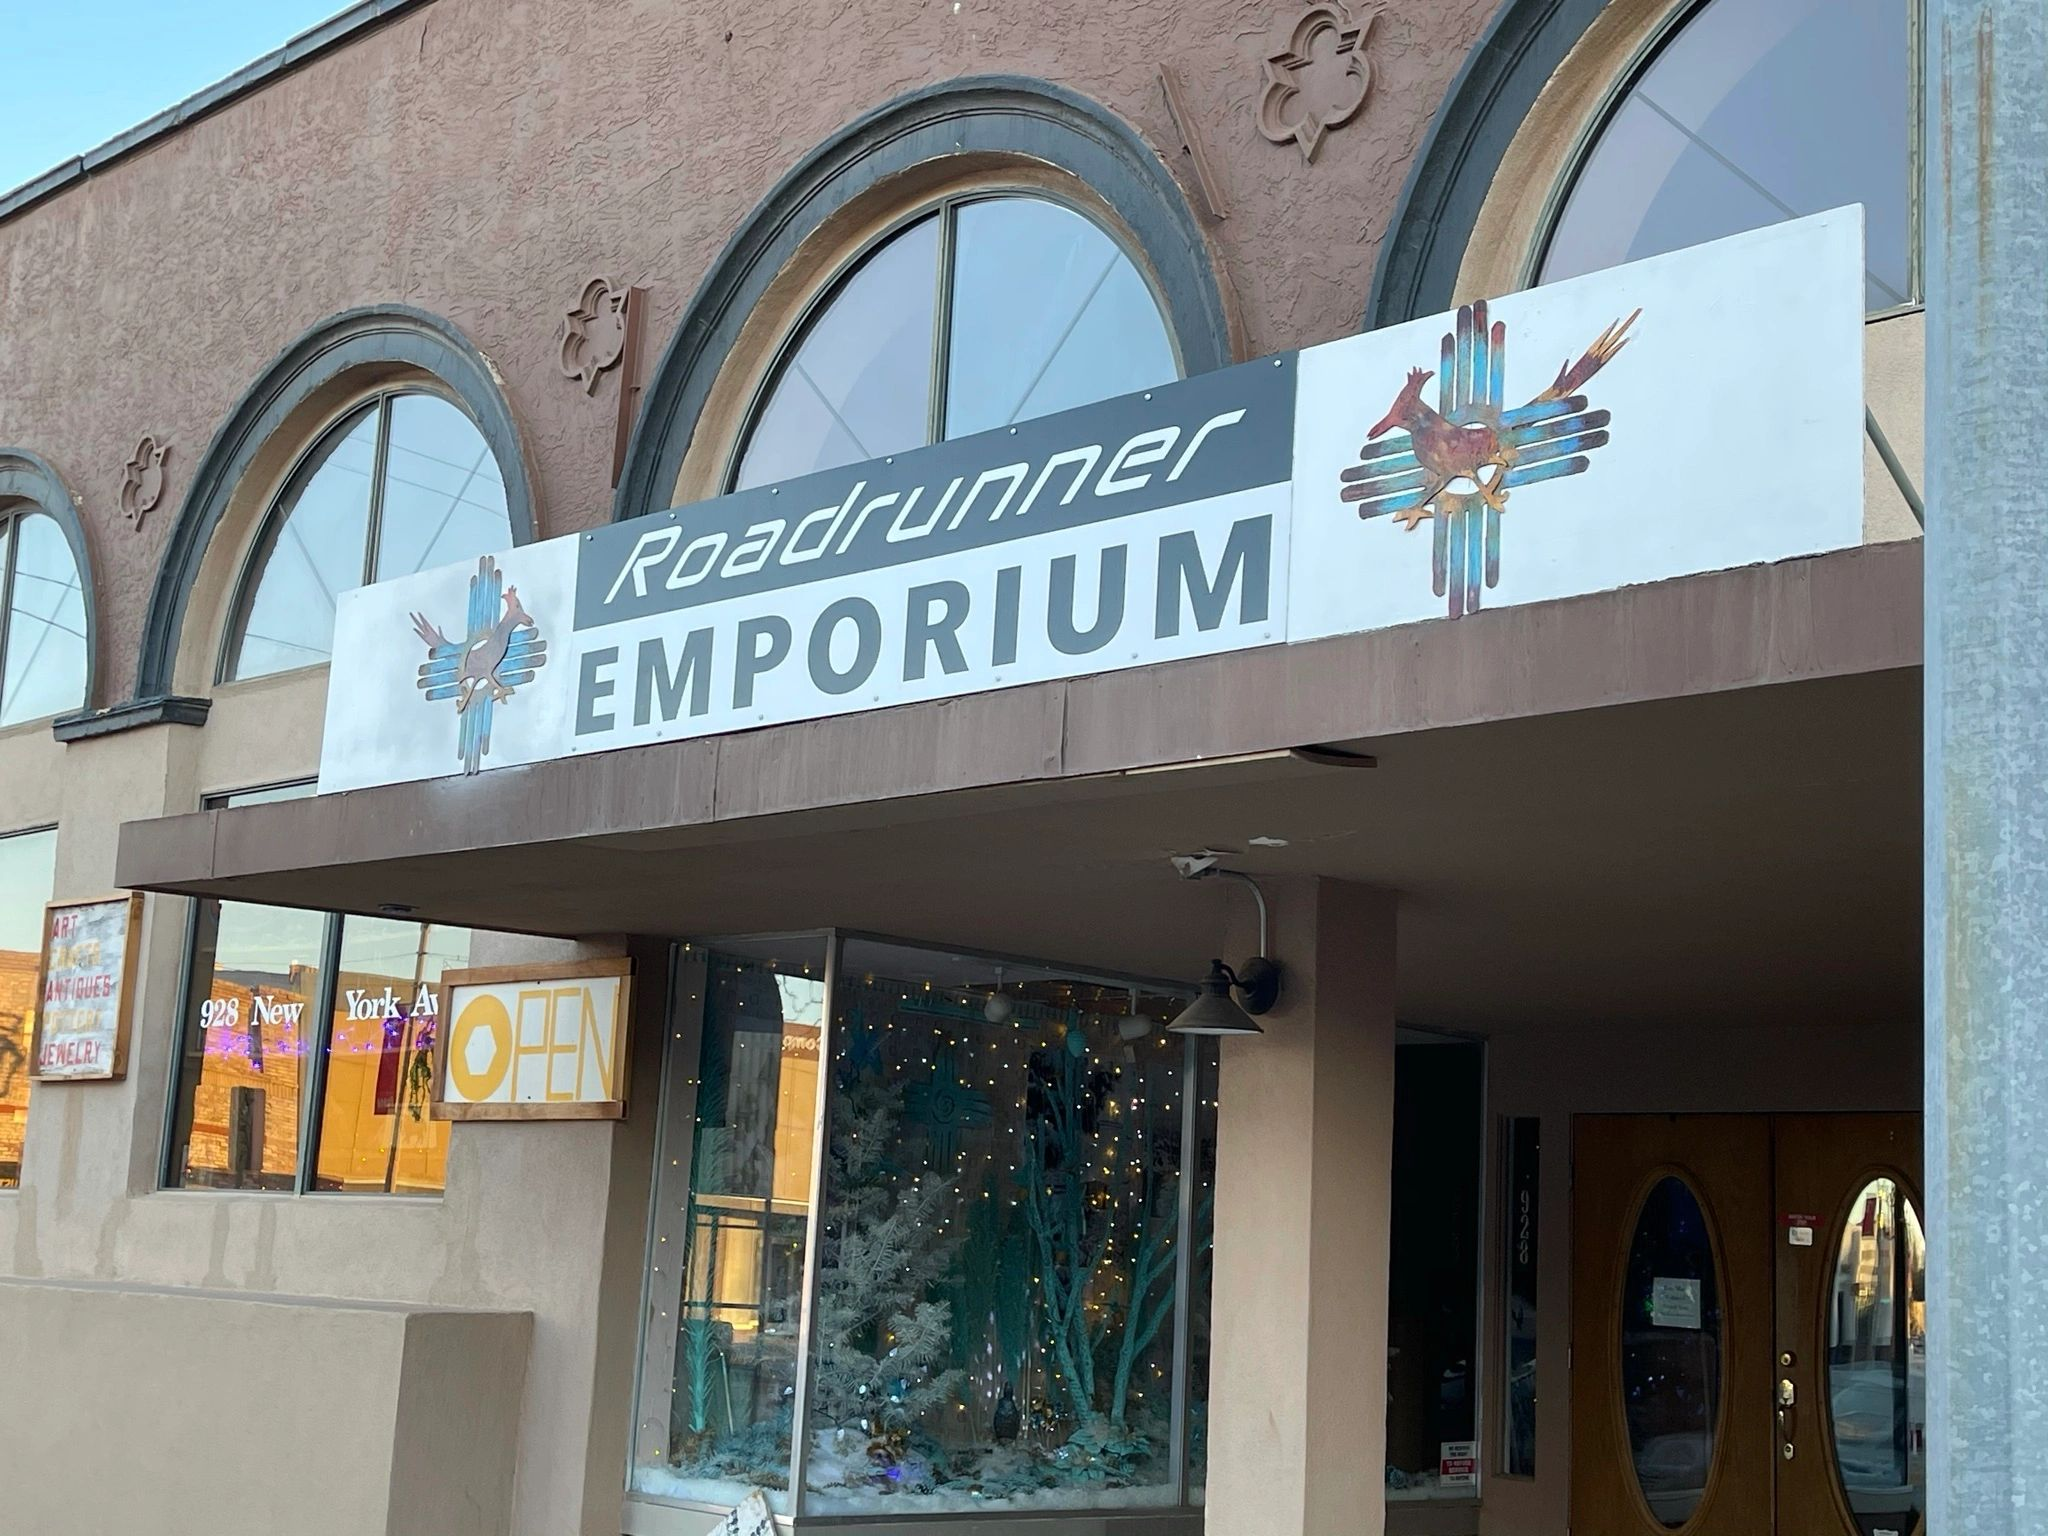 2nd Life Boutique at Roadrunner Emporium, 928 New York Avenue Alamogordo New Mexico featuring Artist